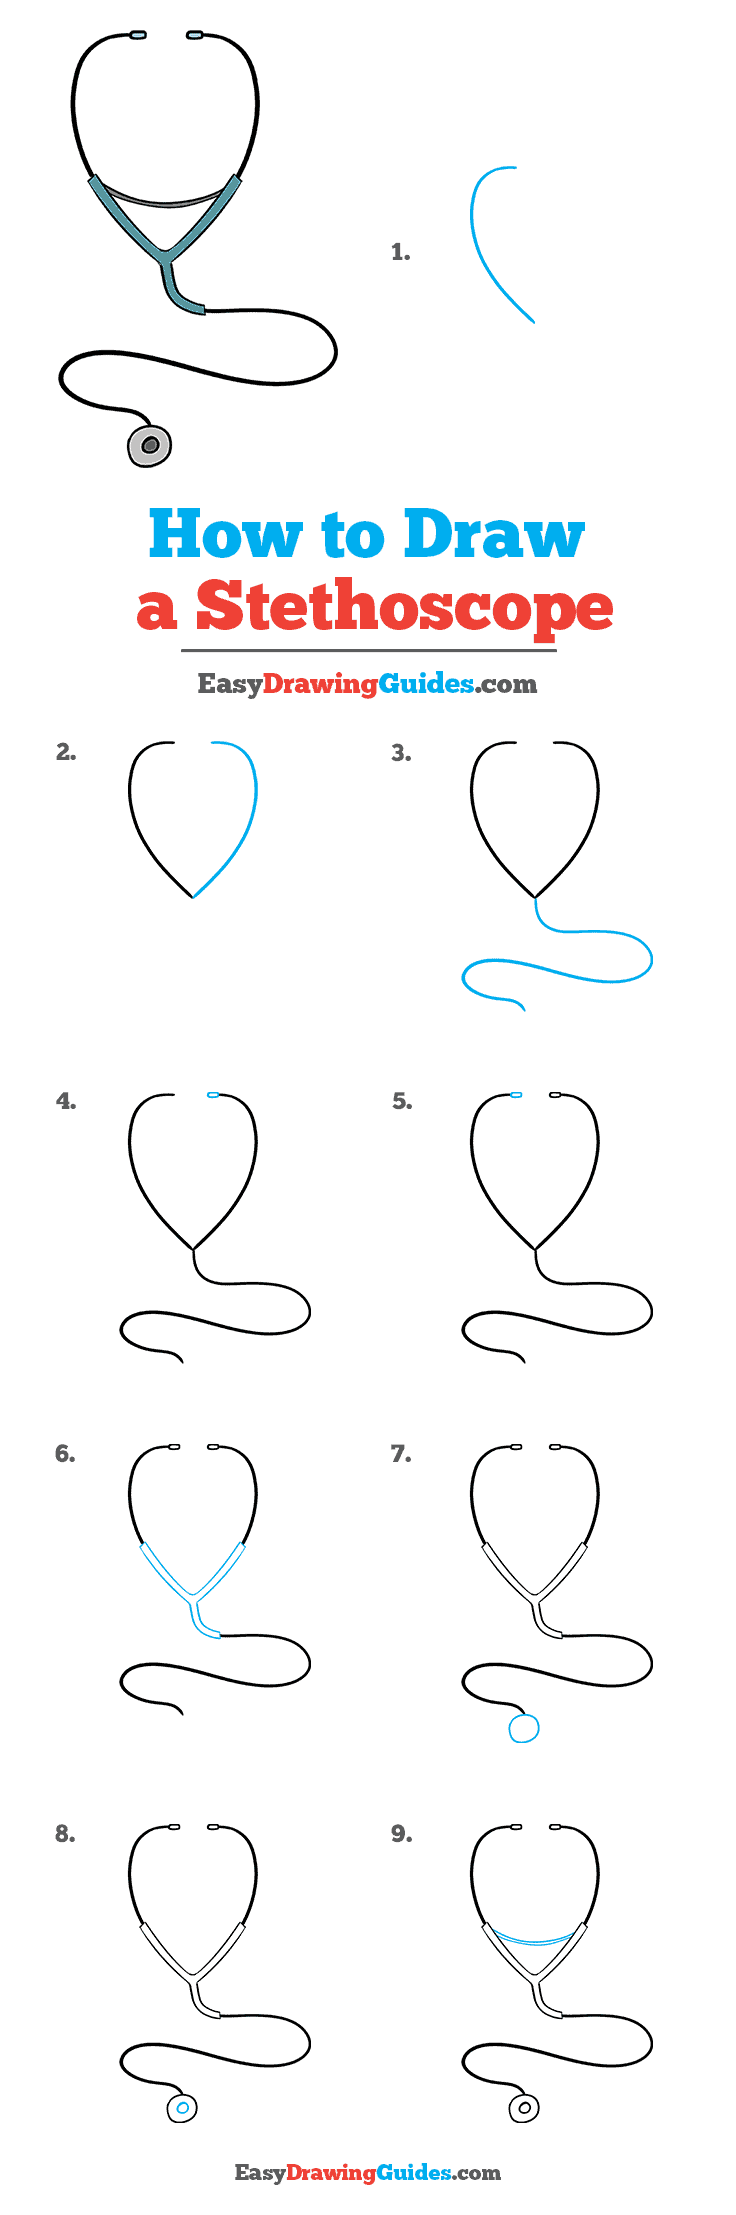 How to Draw Stethoscope